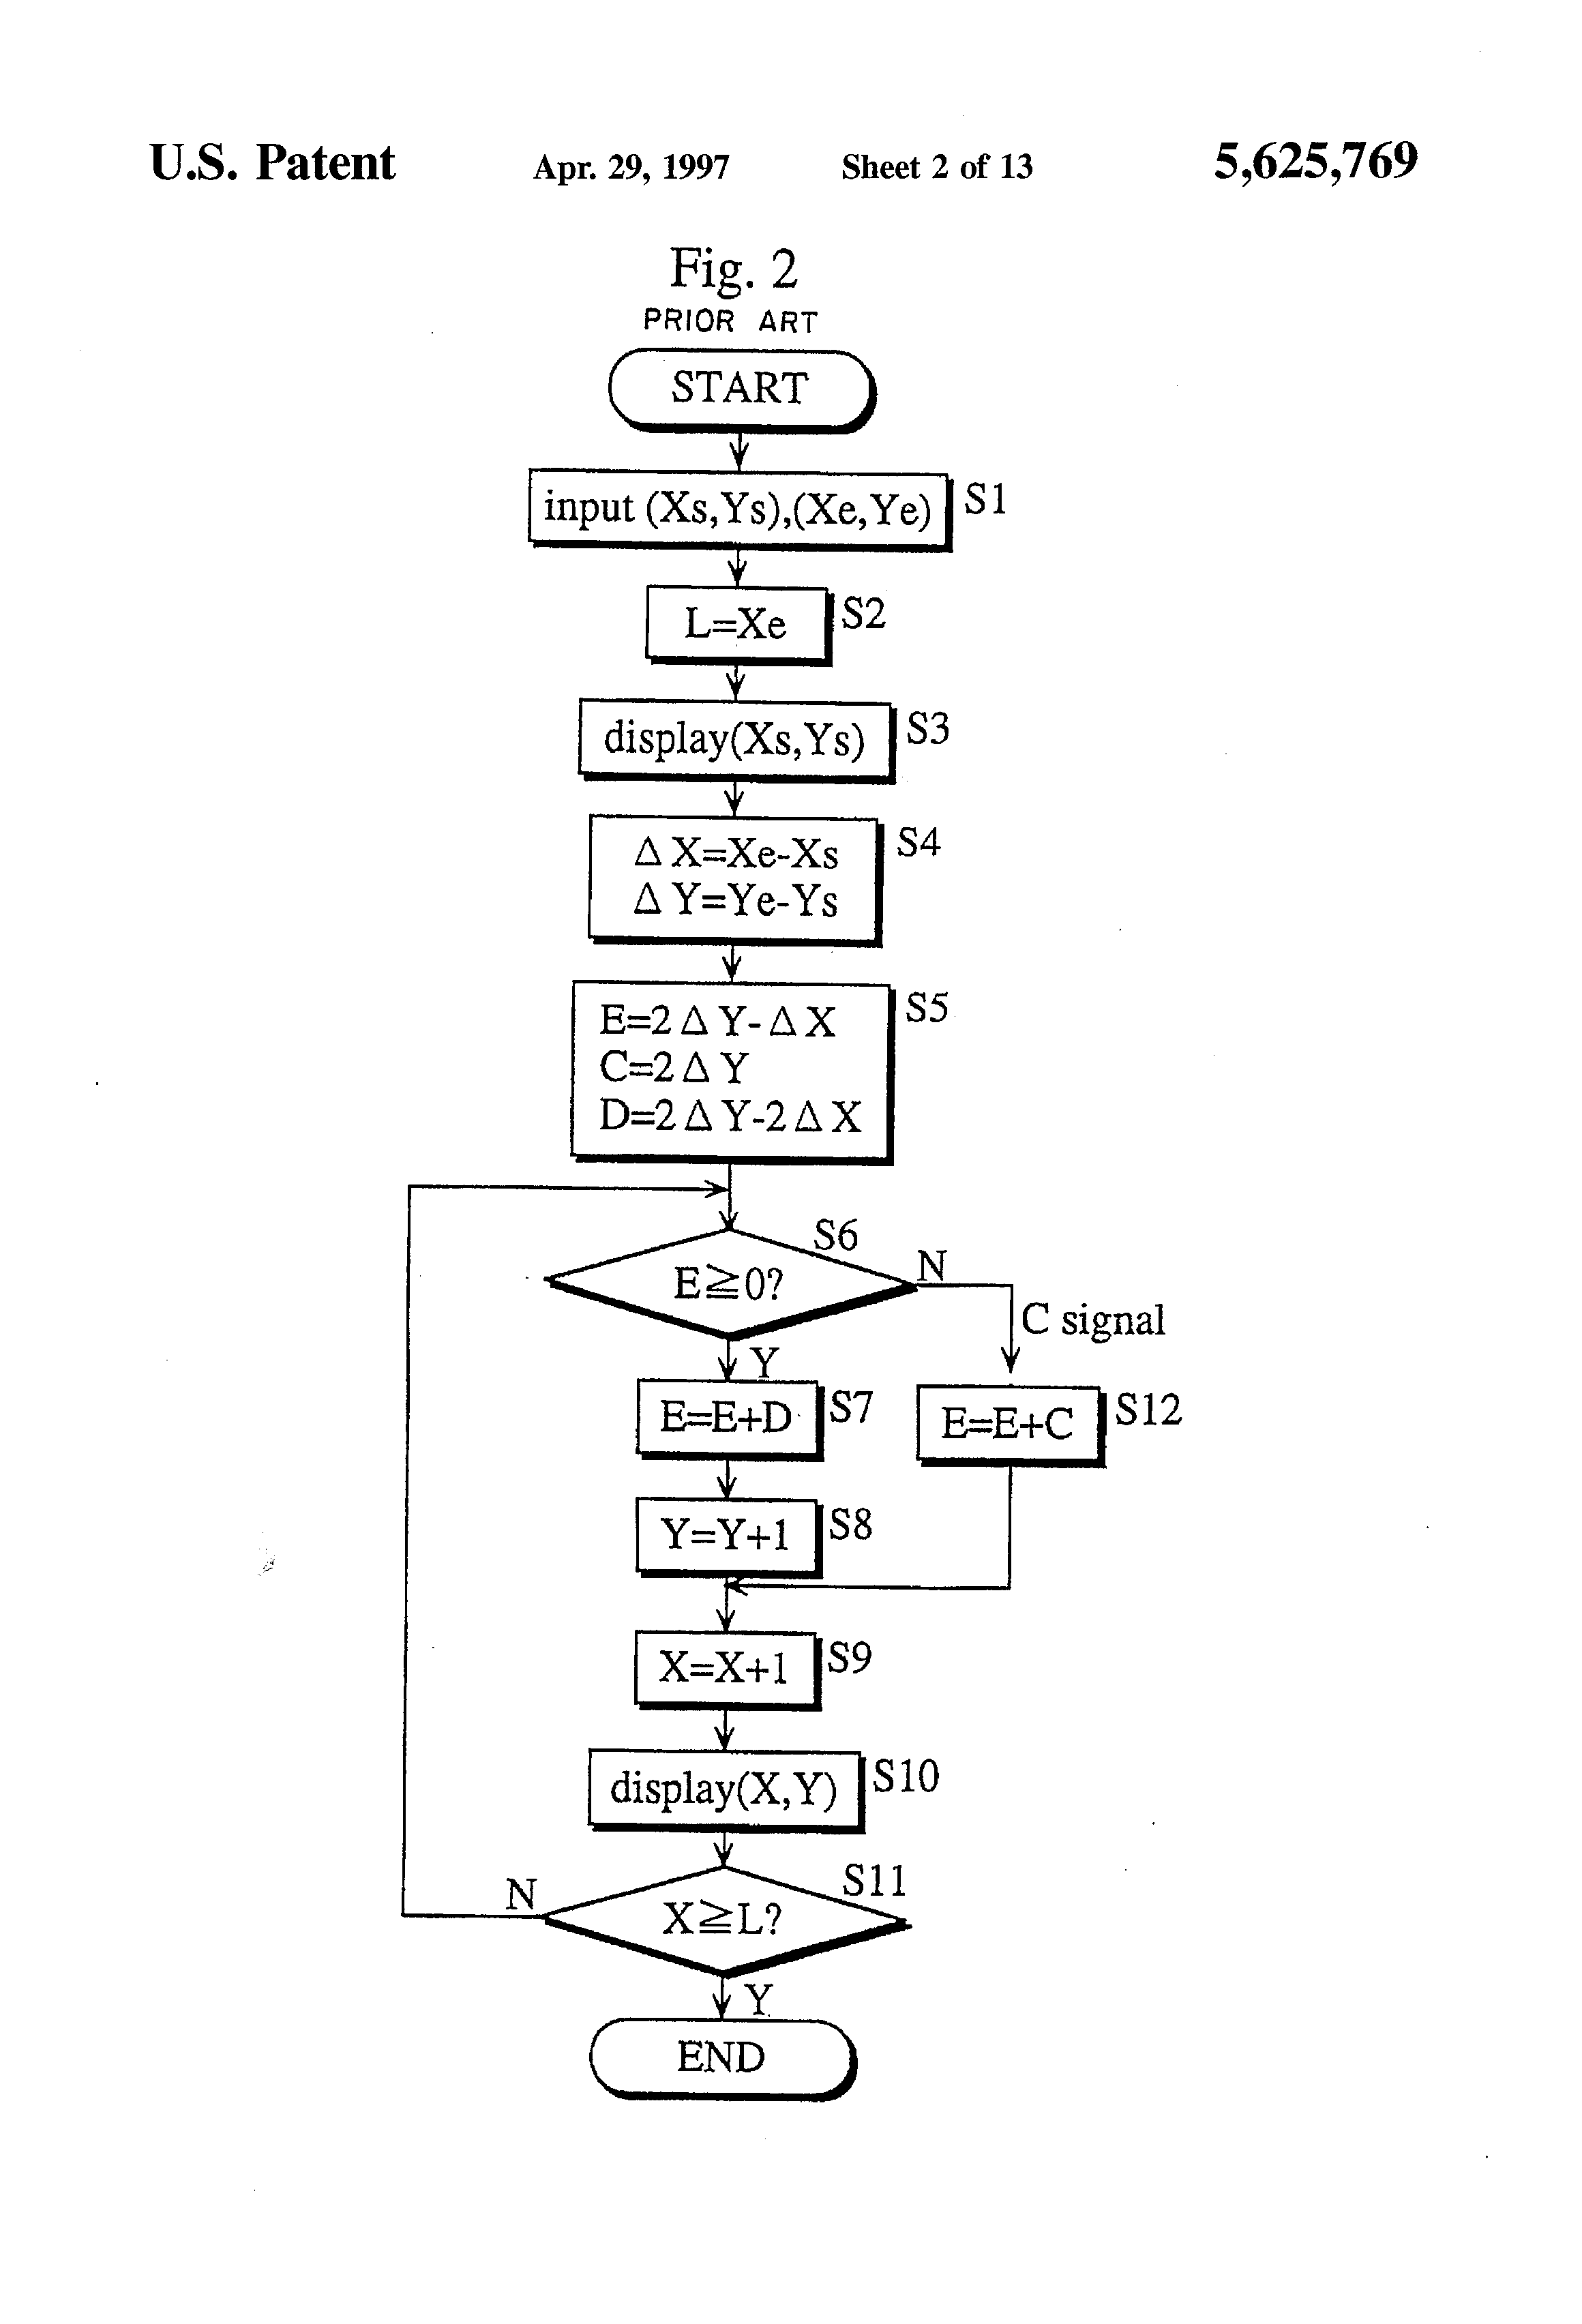 Implementation Of Line Drawing Algorithm : Patent us apparatus for and method of generating